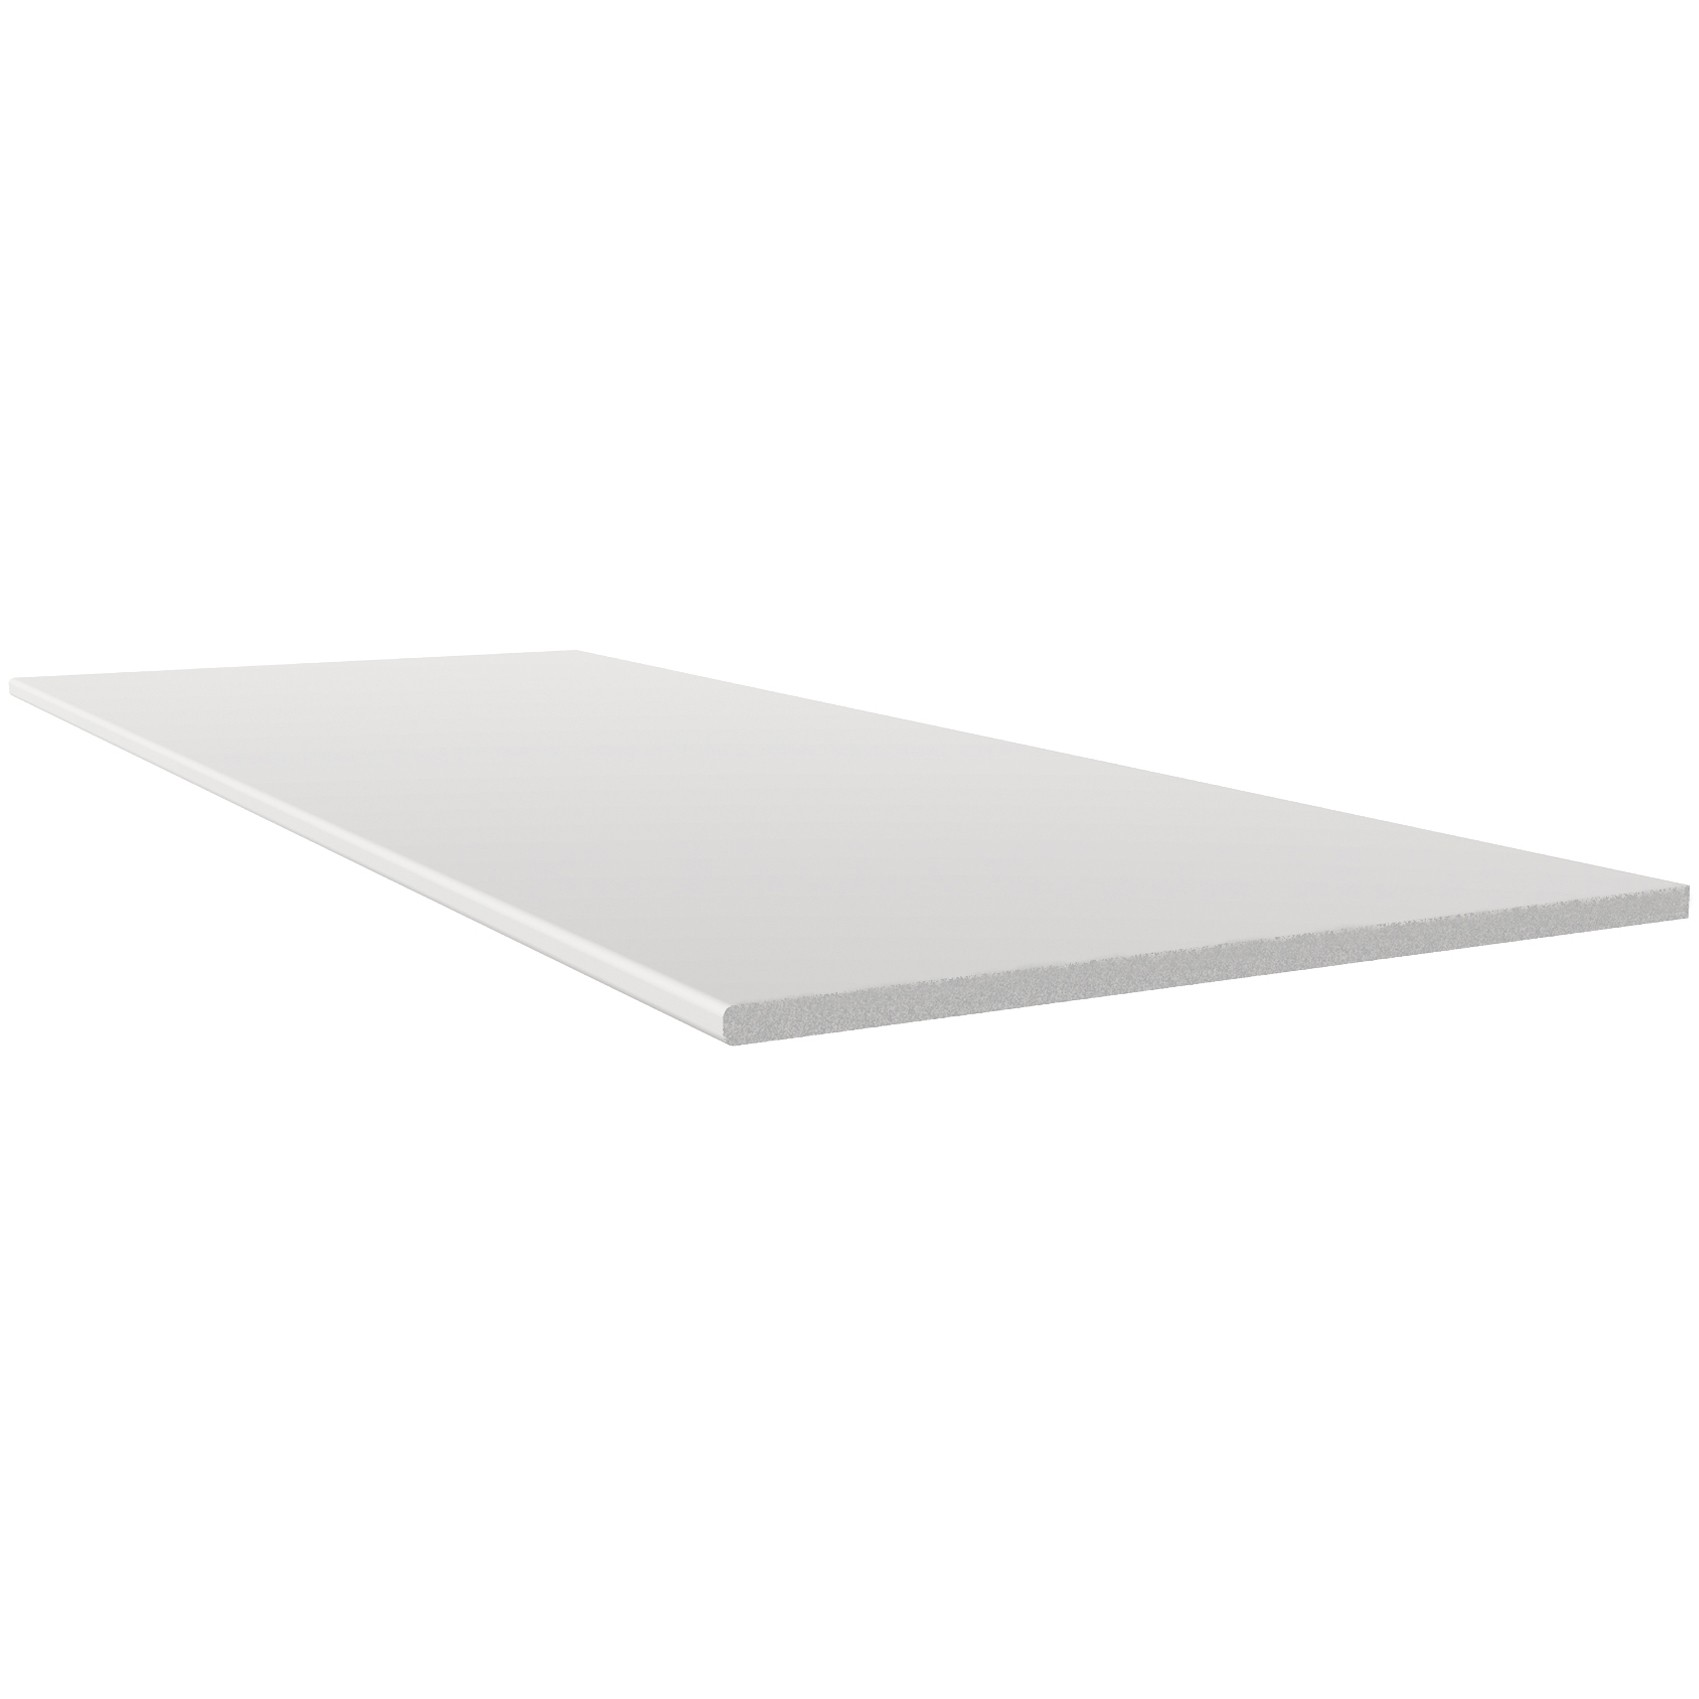 Freefoam 10mm Solid Soffit Board - White, 225mm, 5 metre